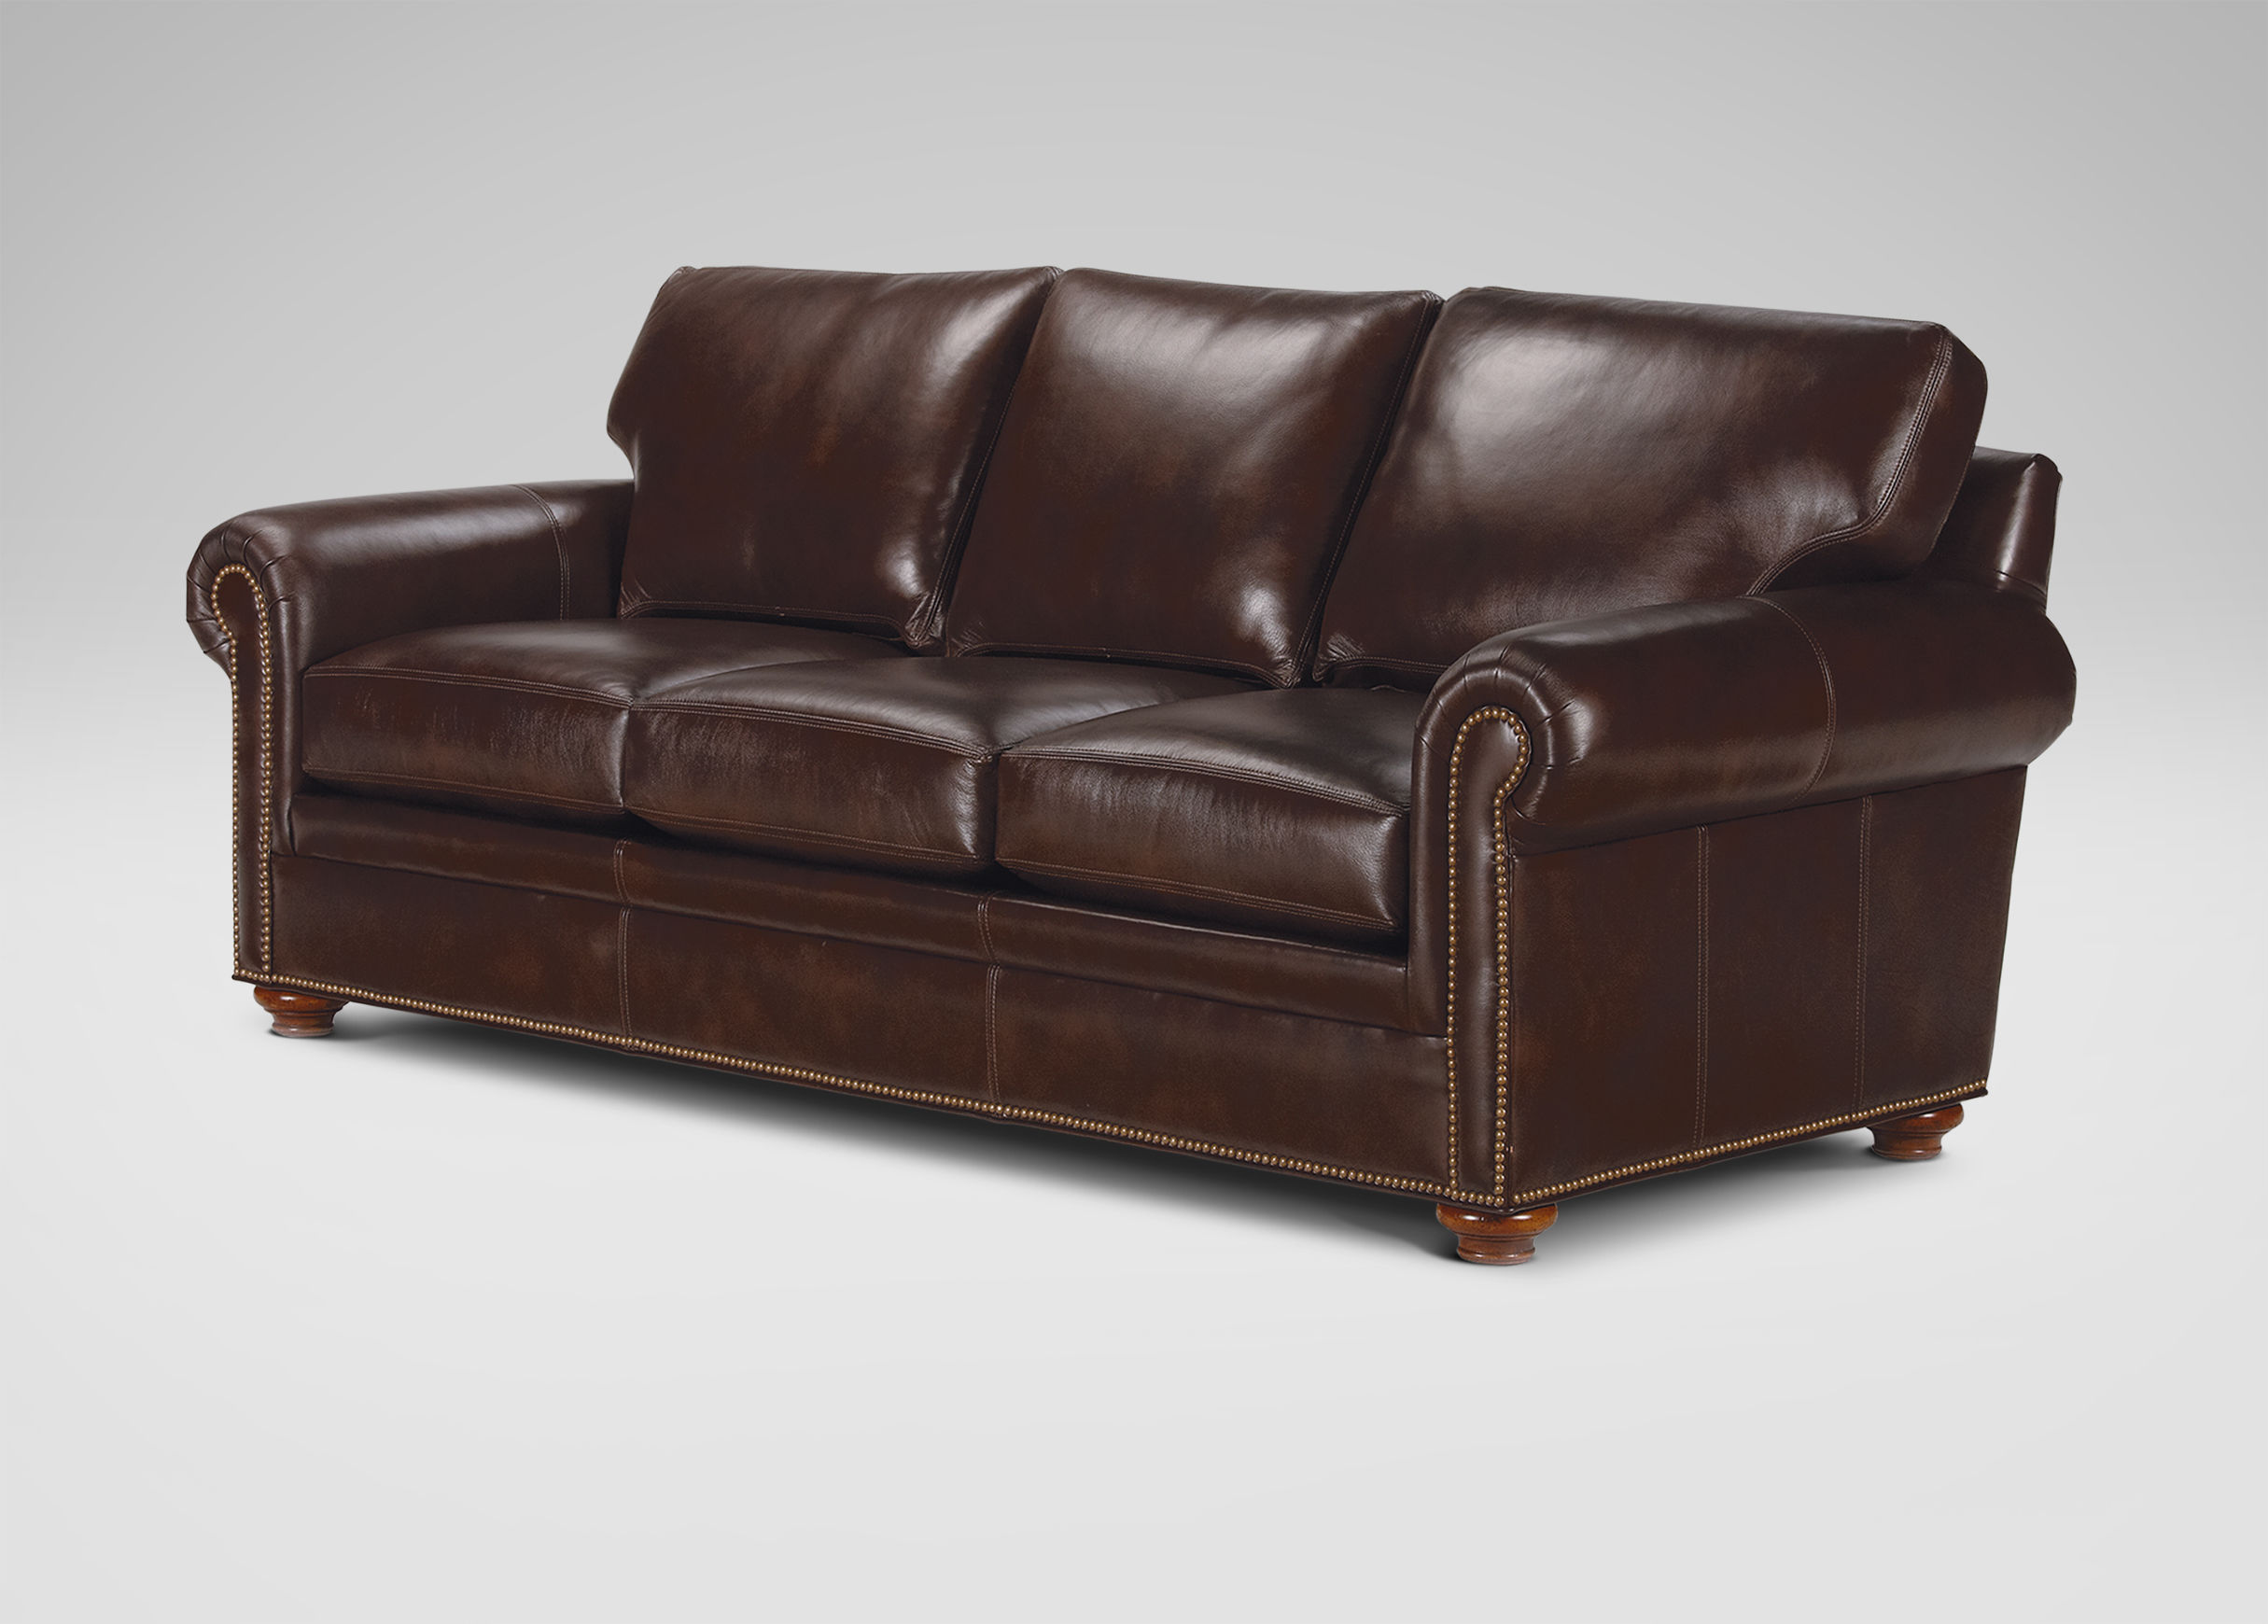 Ethan Allen Leather Sofas Sofas And Loveseats Leather